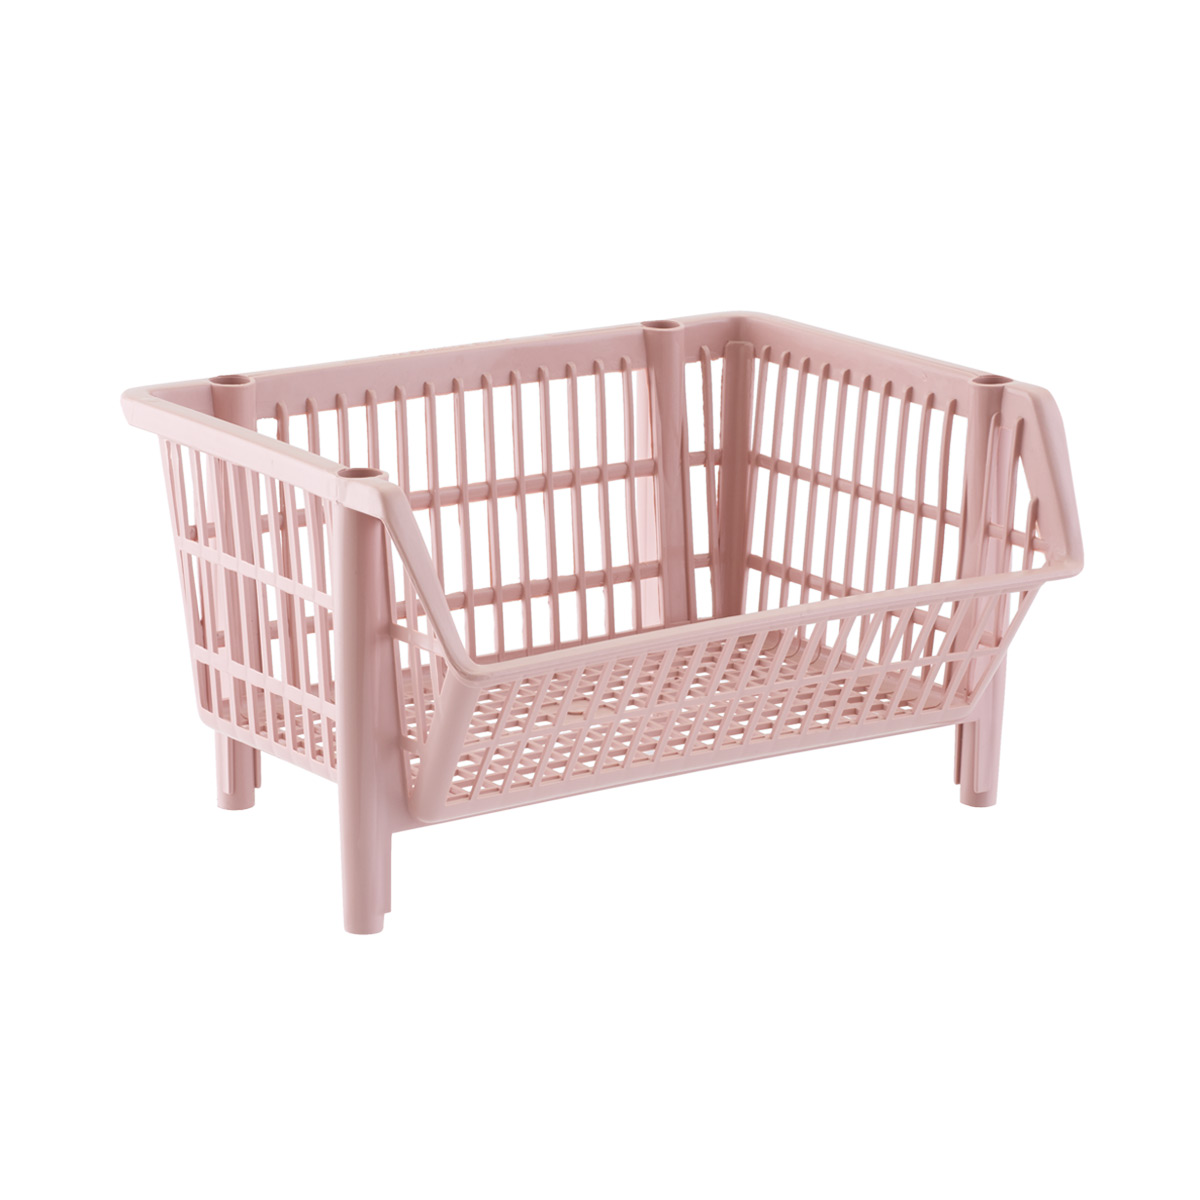 Our Basic Blush Stackable Basket